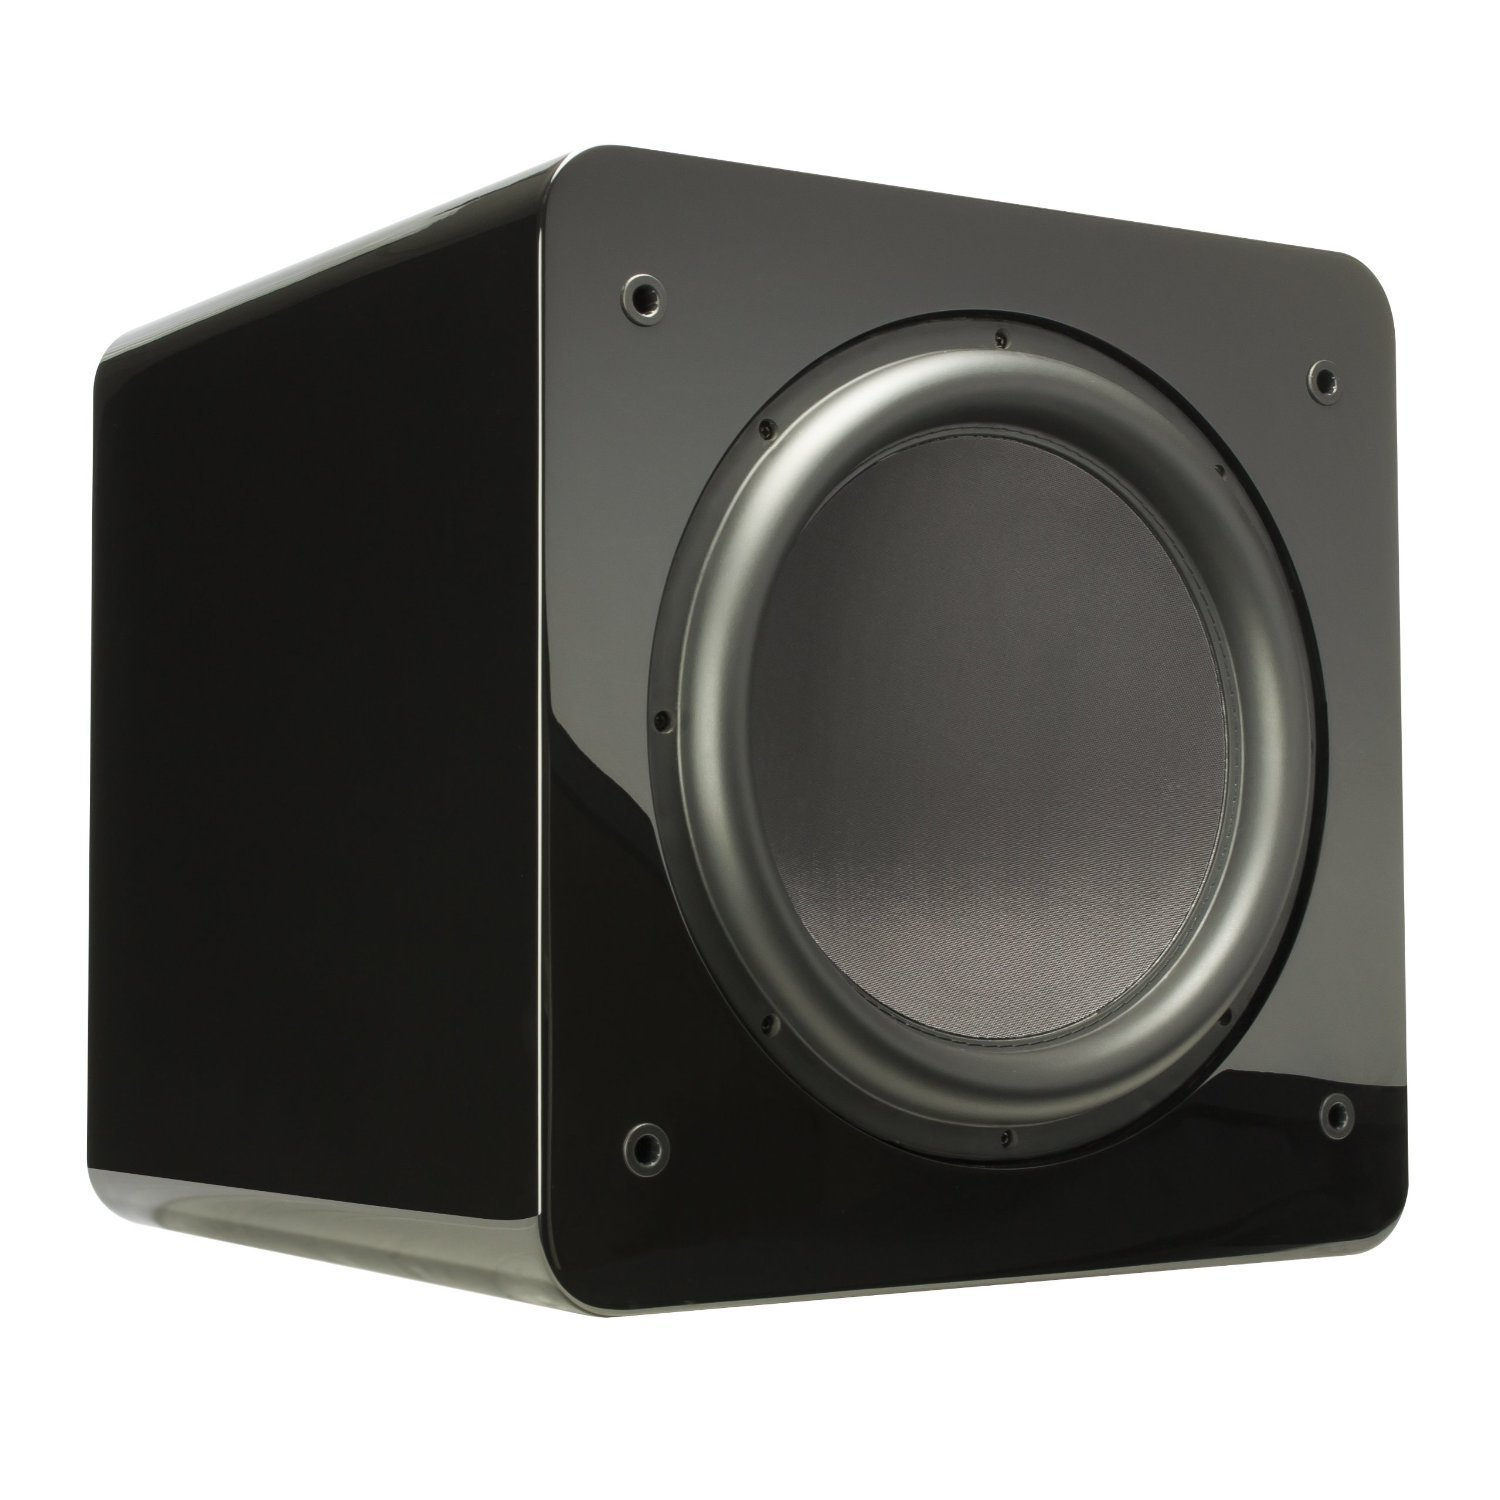 SVS SB13-Ultra – 13.5-inch, 1000 Watt DSP Controlled, Sealed Box Subwoofer with Variable Tuning (Piano Gloss) by SVS